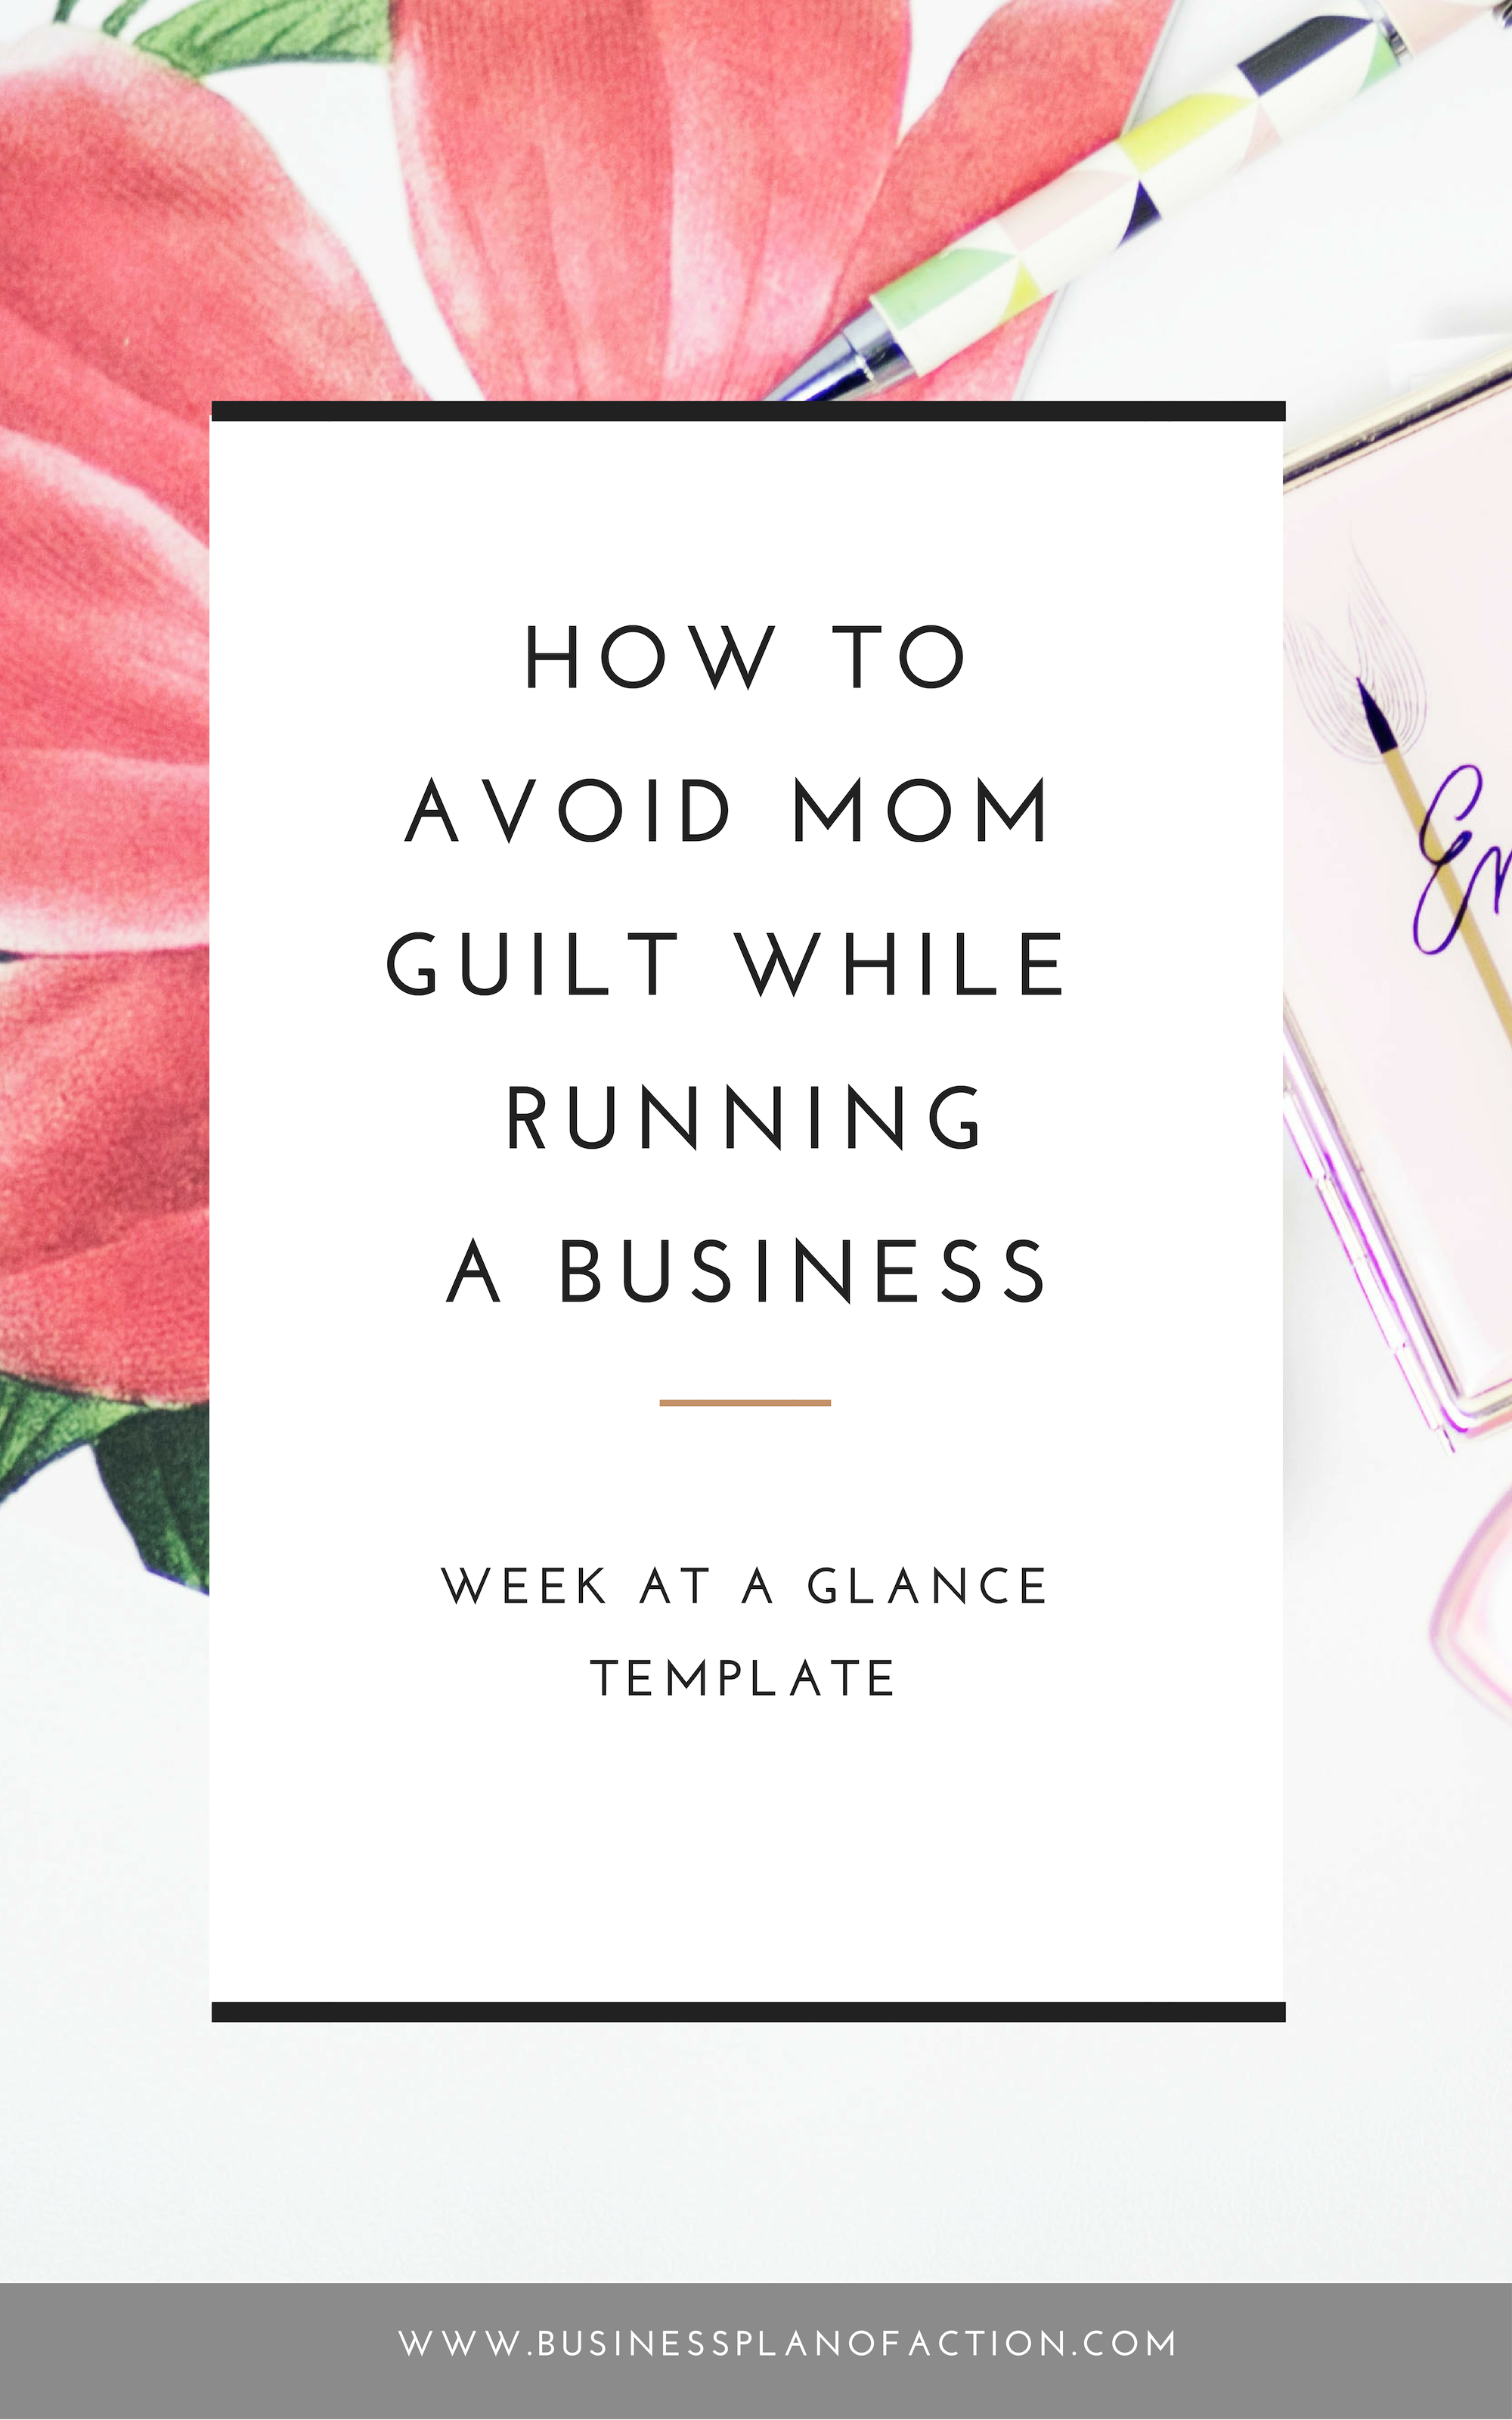 how to avoid mom guilt while running a business.png